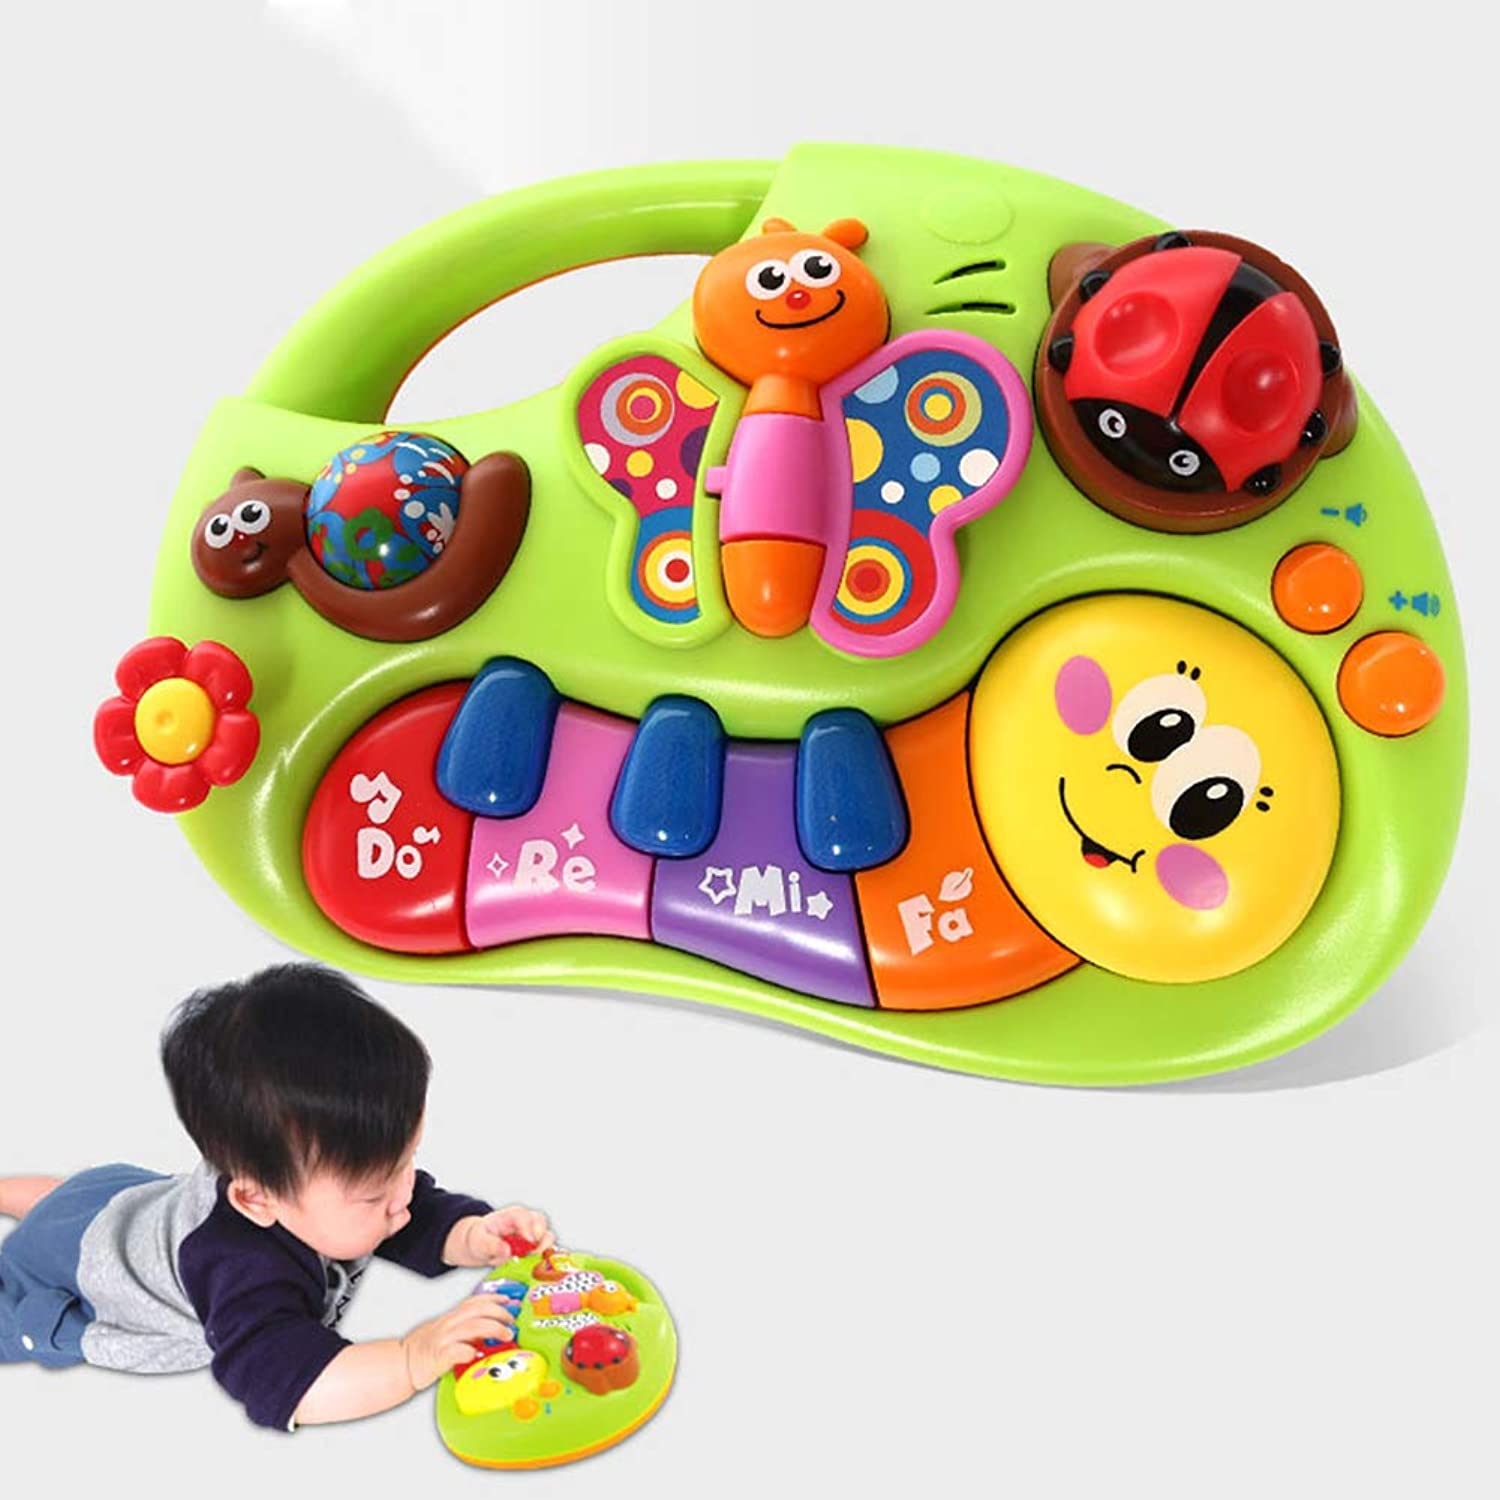 EDTara Piano Musical Toys,Electronic Music Piano Keyboard Drums Learning Toy for Baby Infant Toddler Kids,Cartoon Piano Gifts Instrument Toys